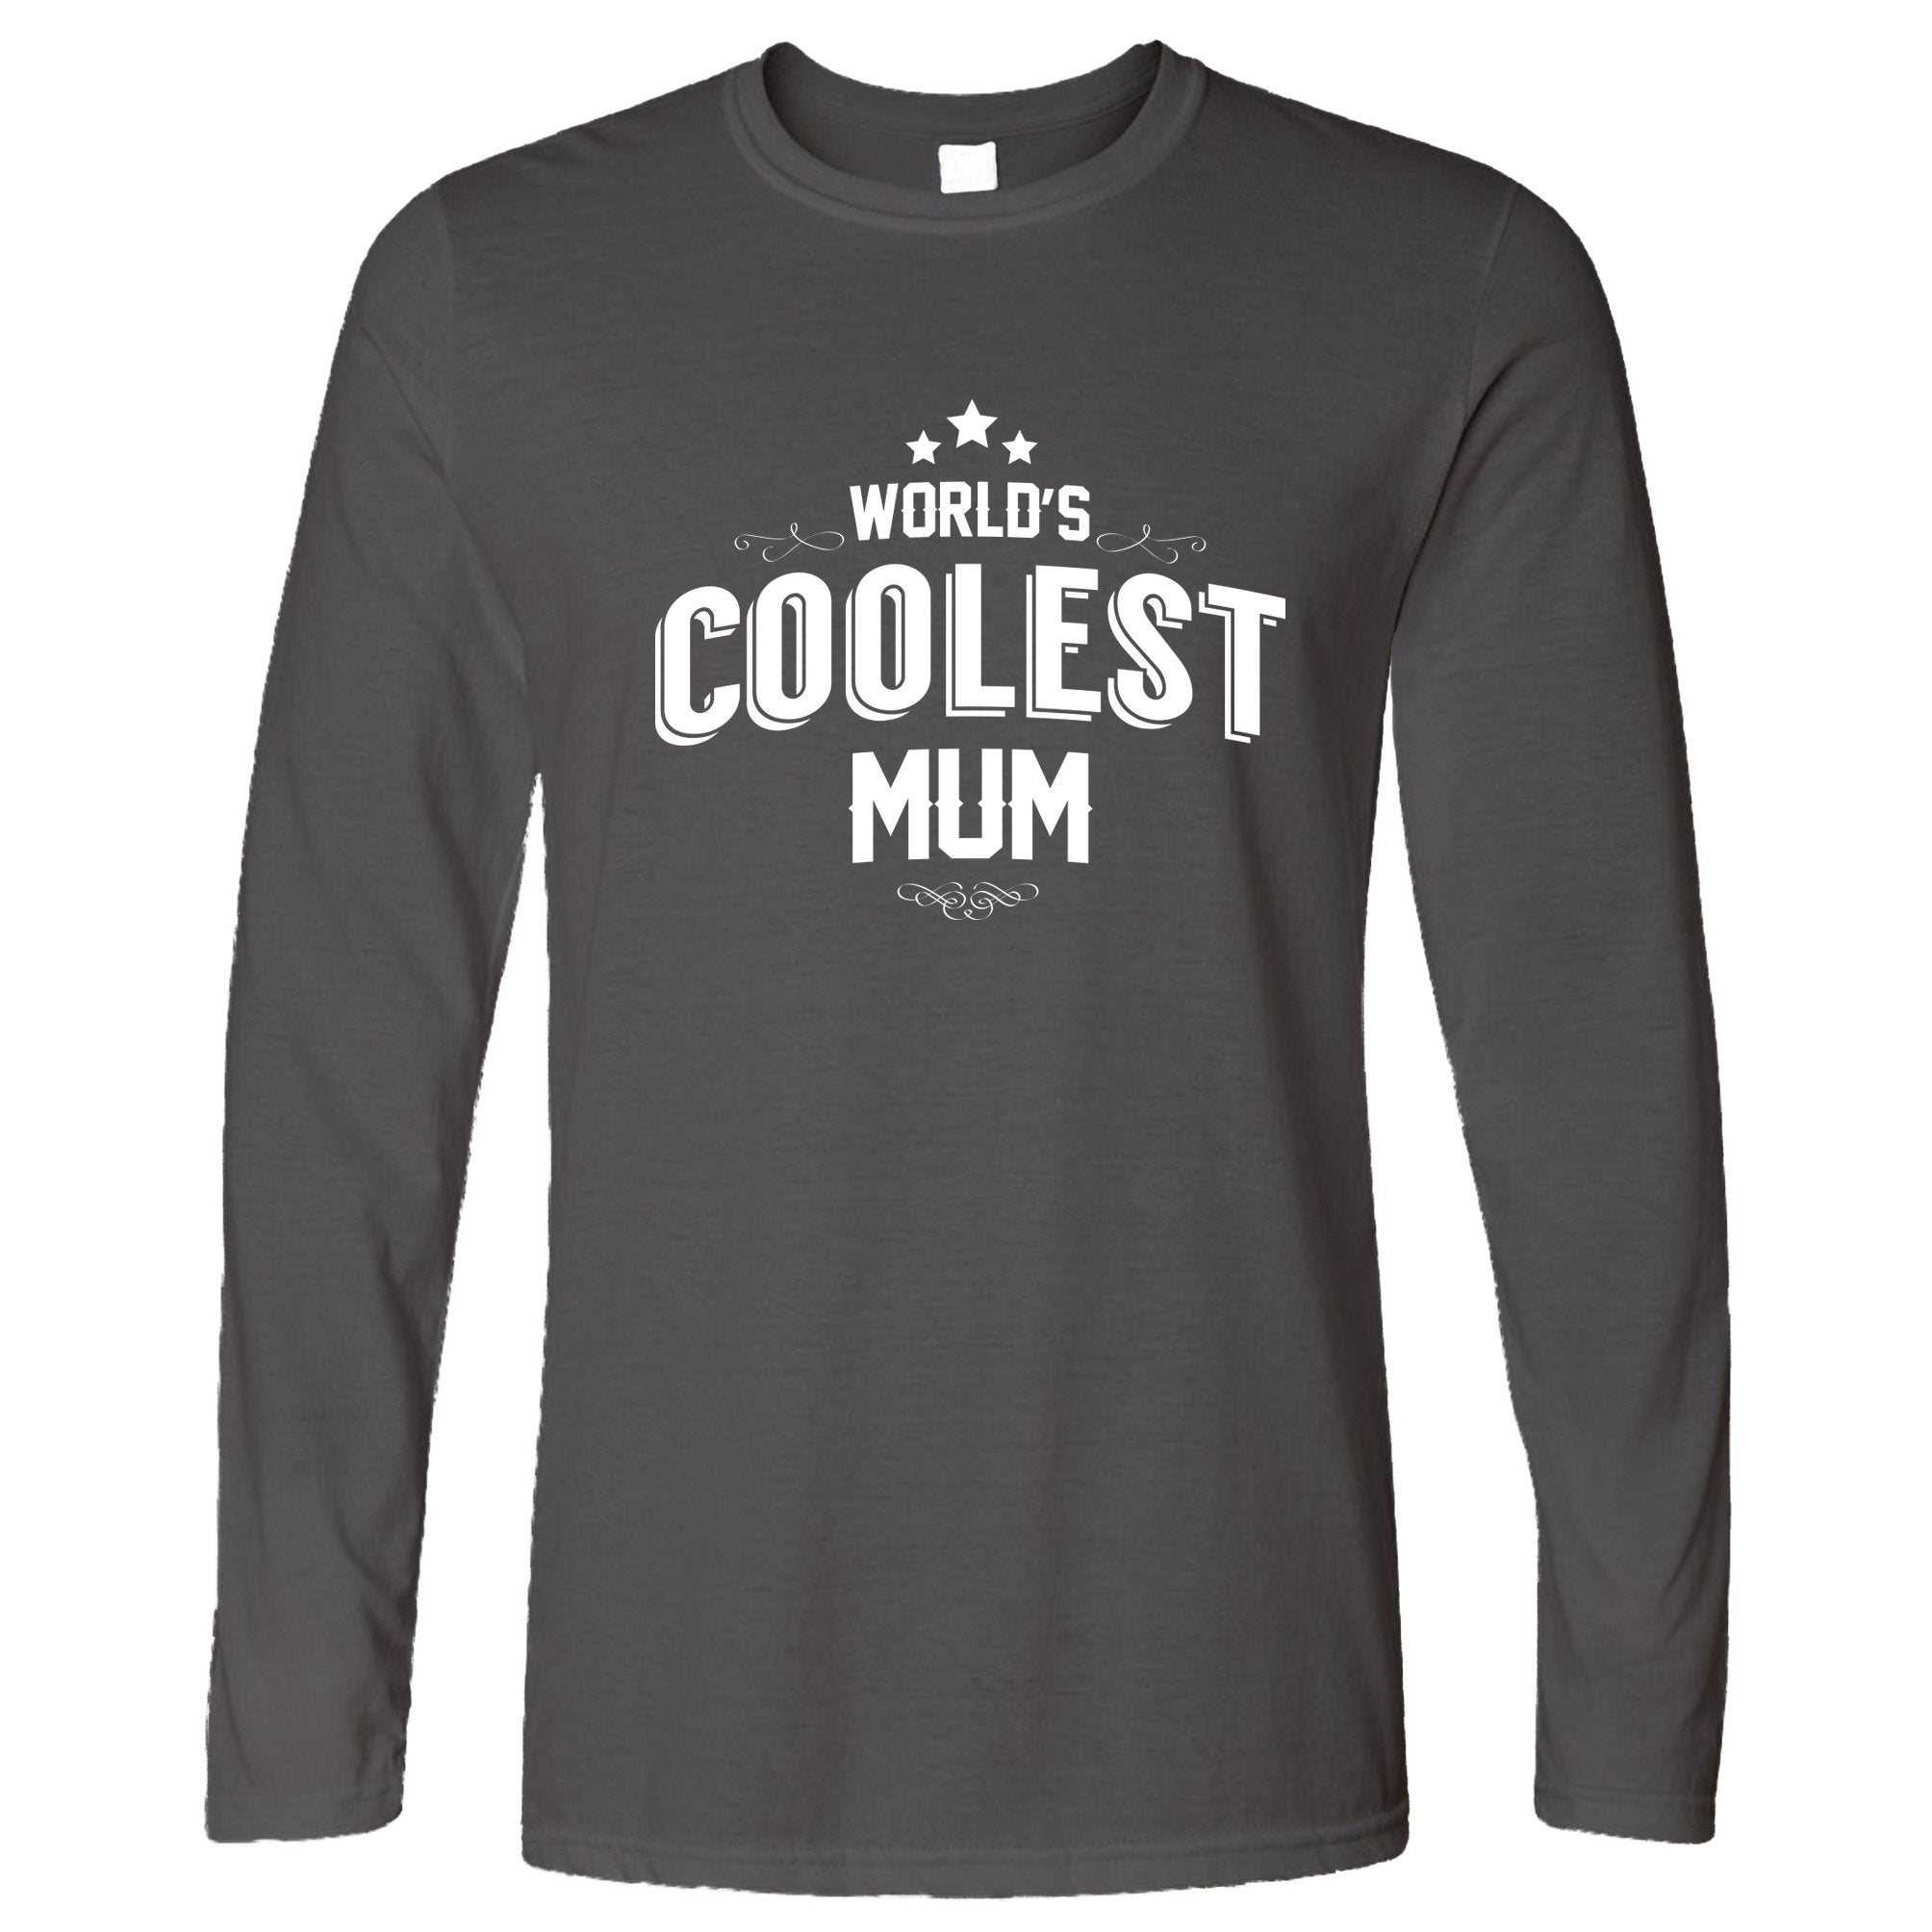 Novelty Long Sleeve Worlds Coolest Mum Slogan T-Shirt